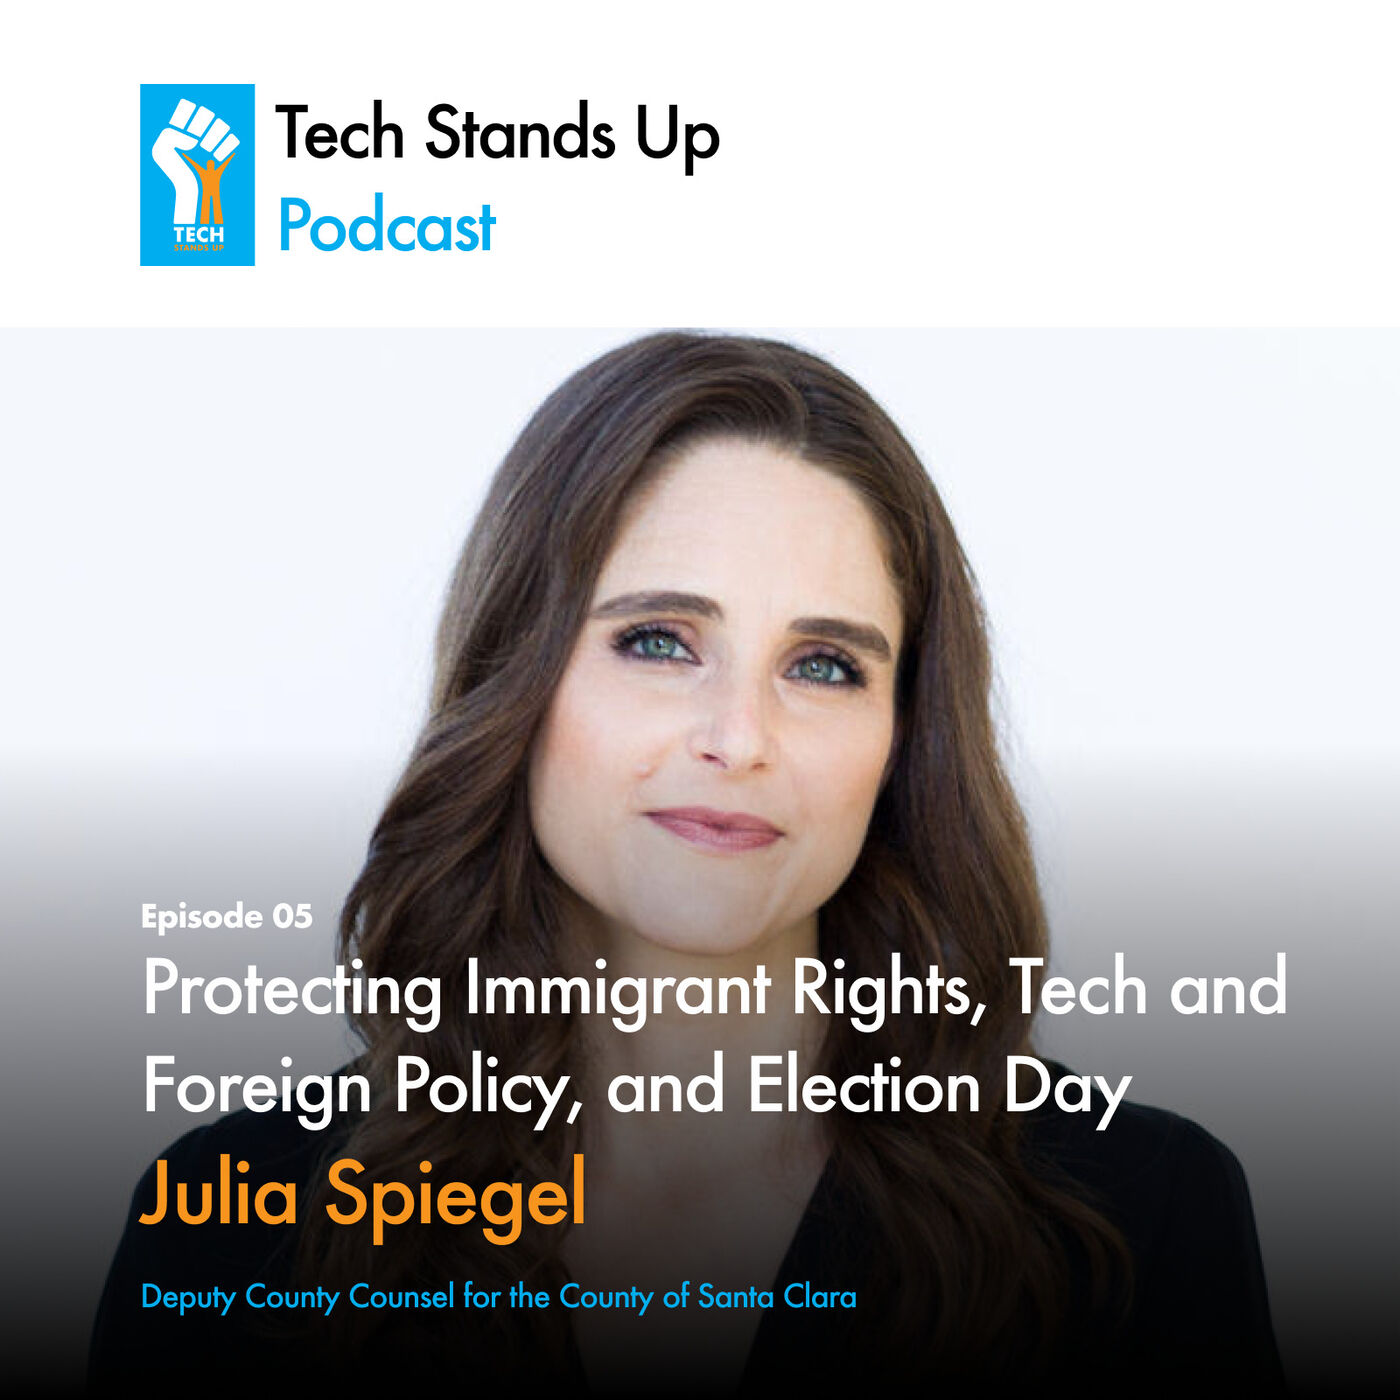 Julia Spiegel: Protecting Immigrant Rights, Tech and Foreign Policy, and Election Day